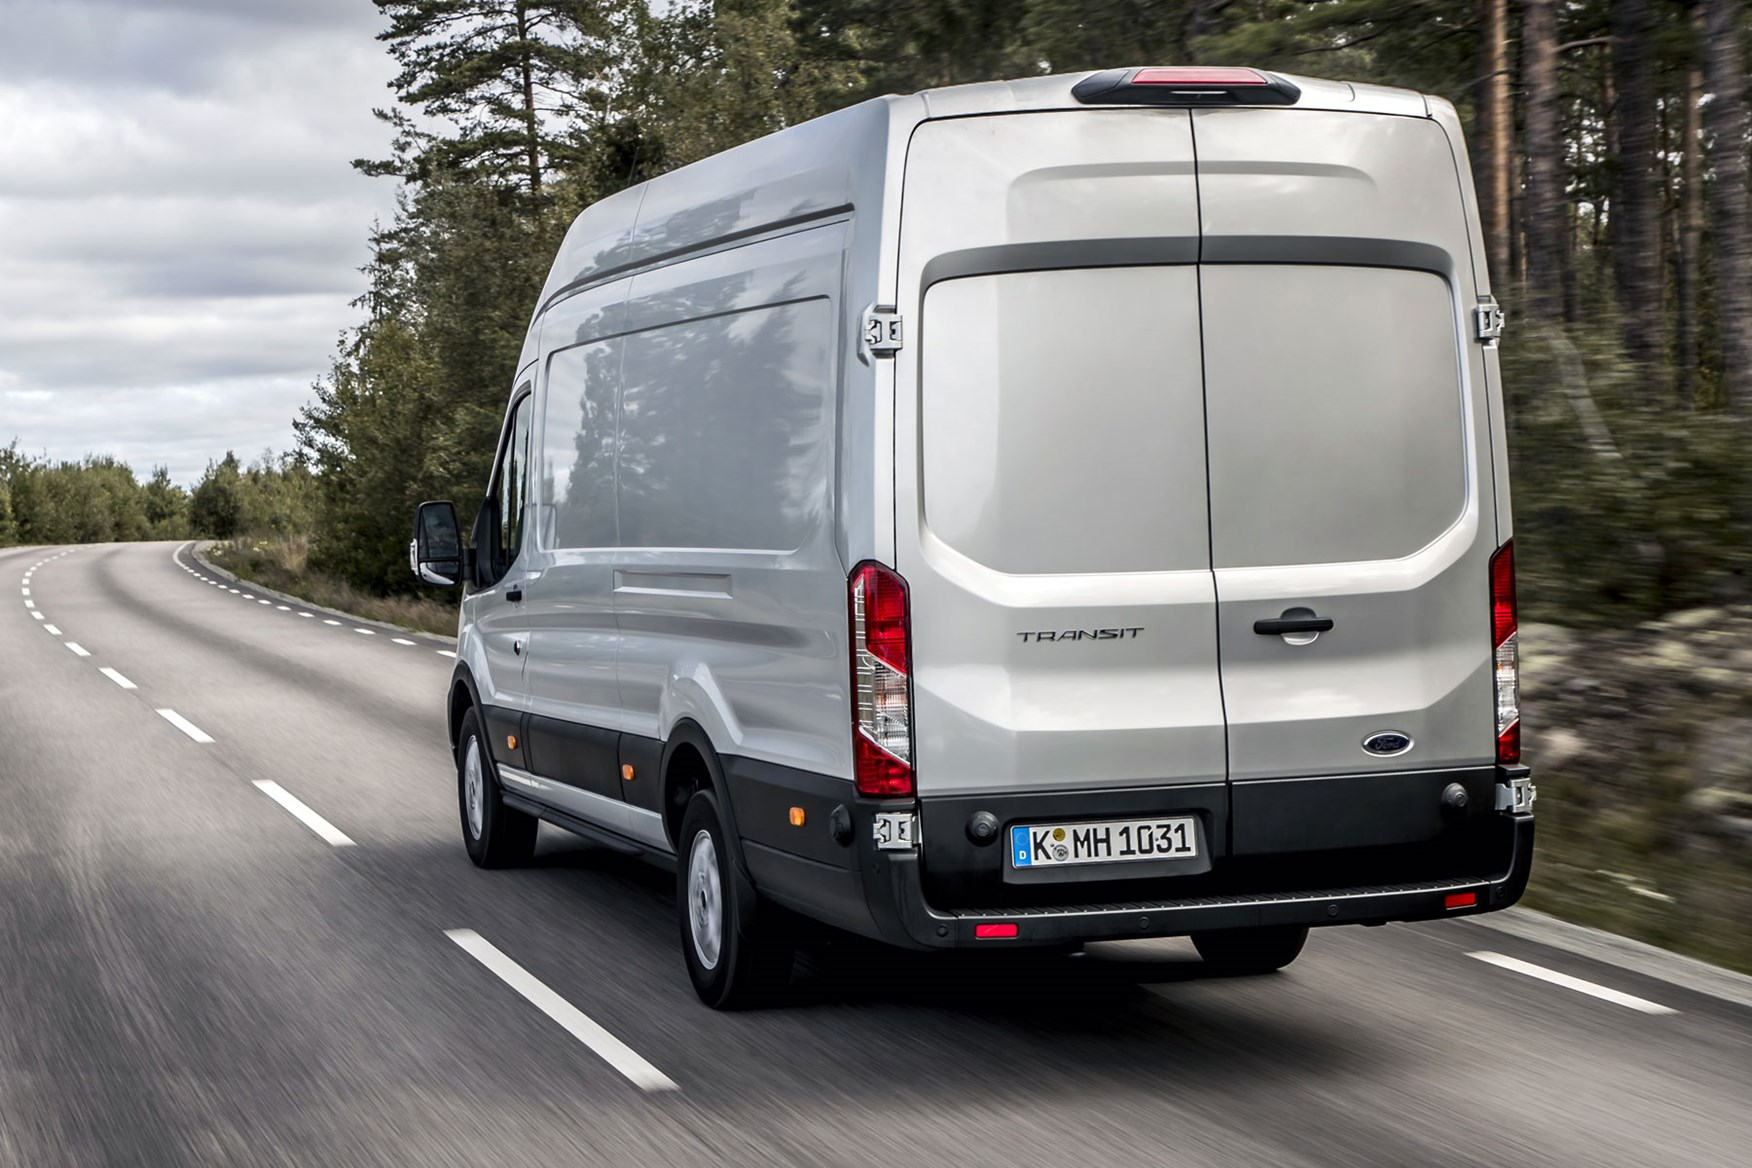 Ford Transit review - 2019 facelift model, rear view, driving, silver